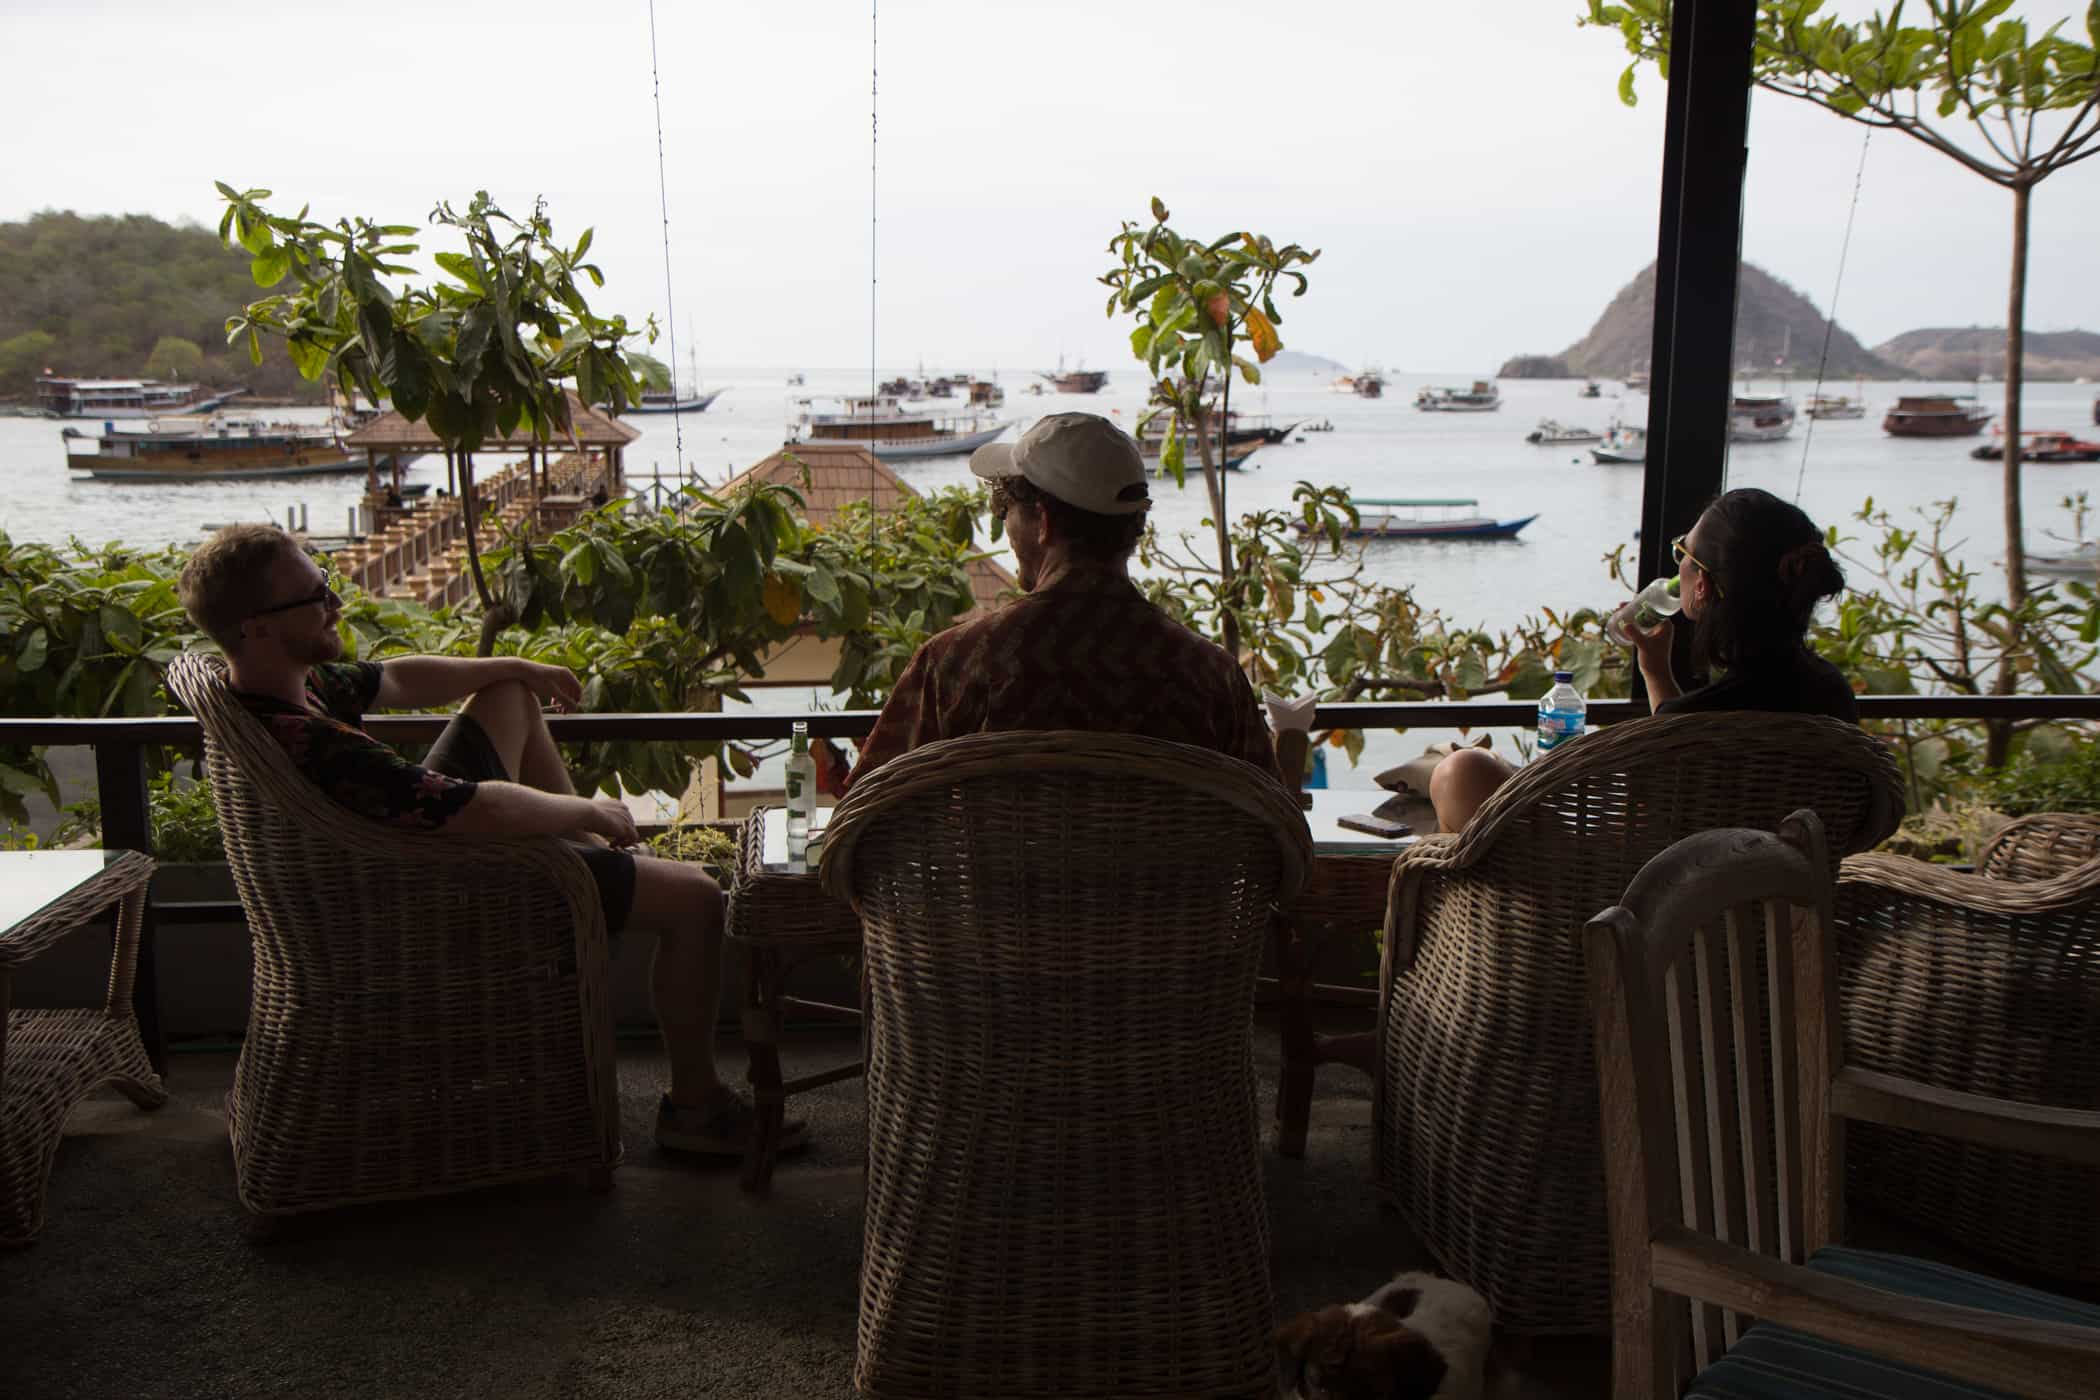 The View Over Lebuan Bajo Port Seen From A Restaurant